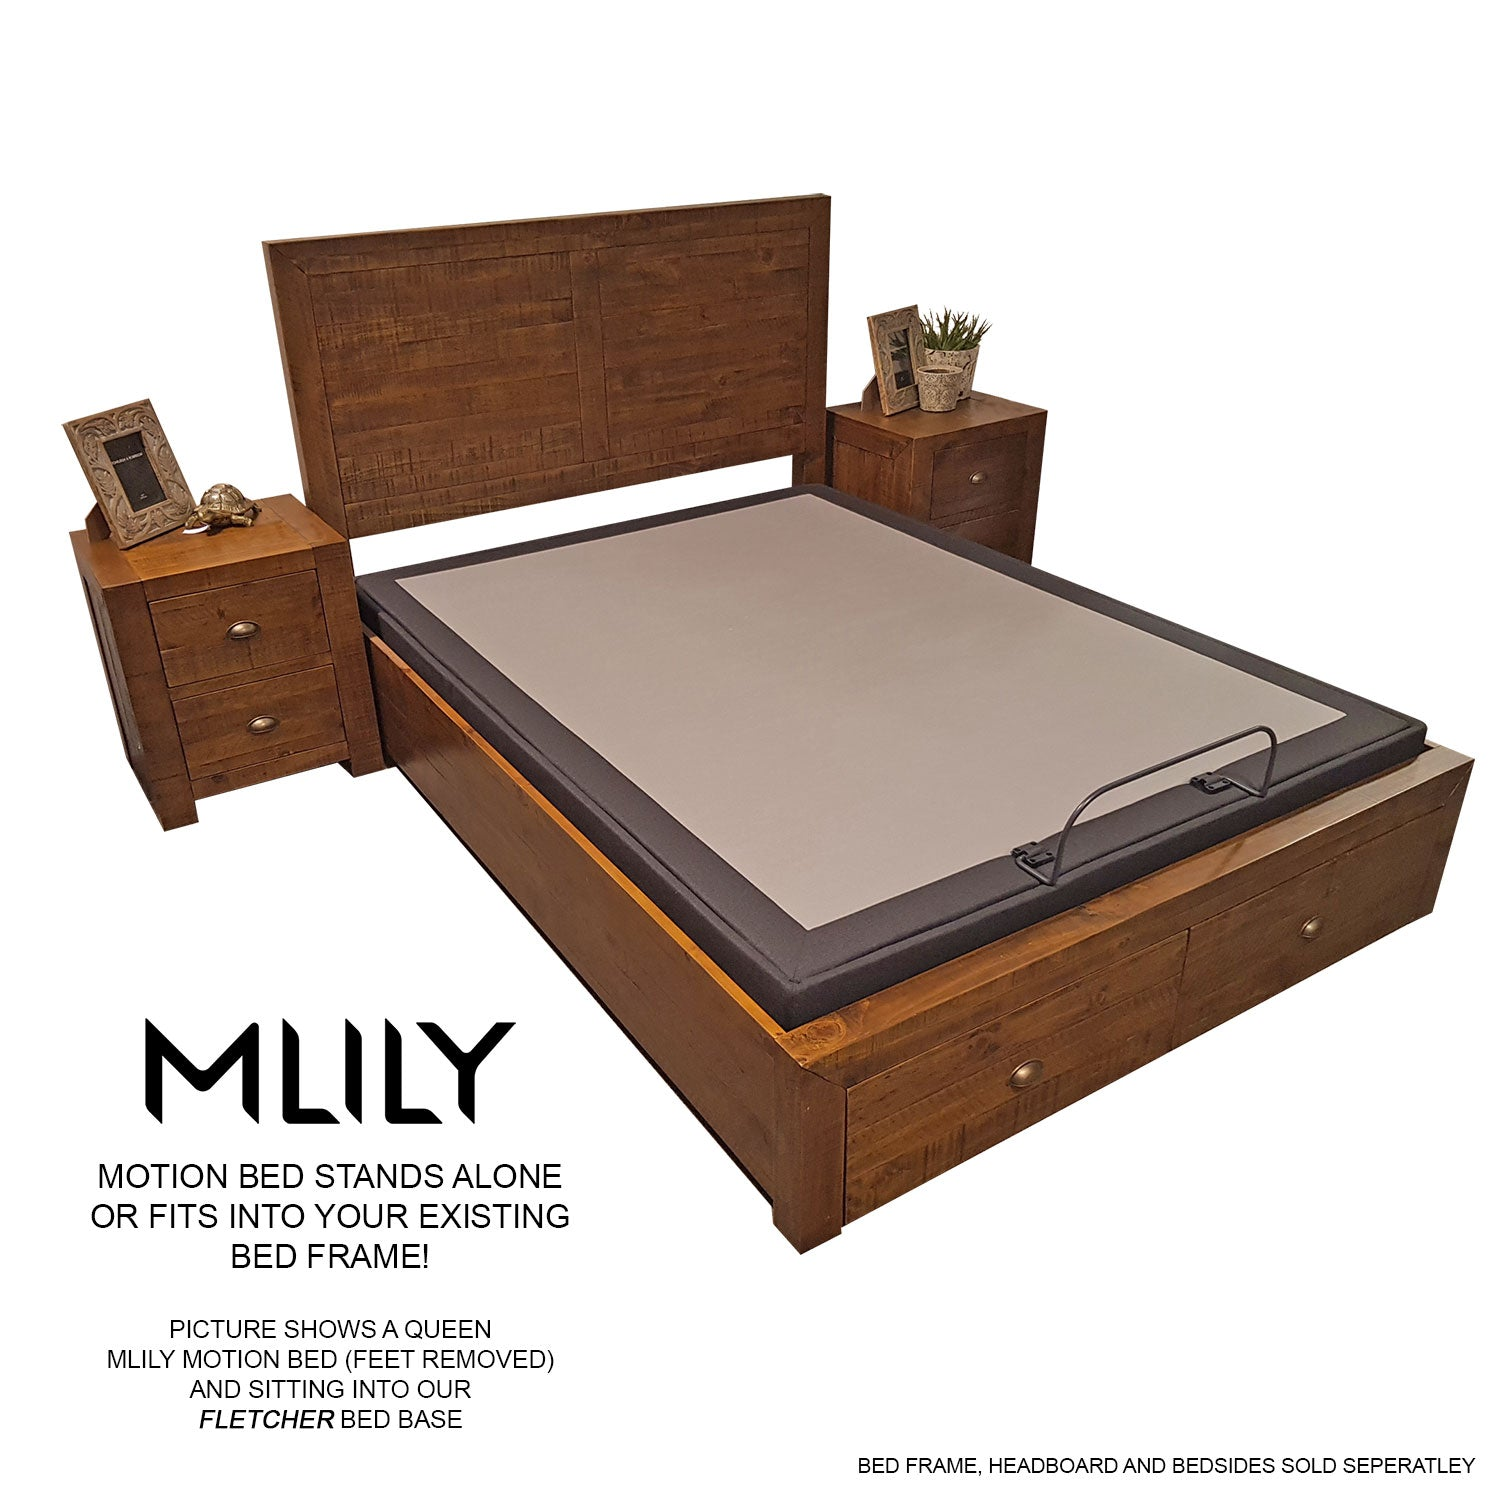 MLILY Motion Bed - The Furniture Store & The Bed Shop